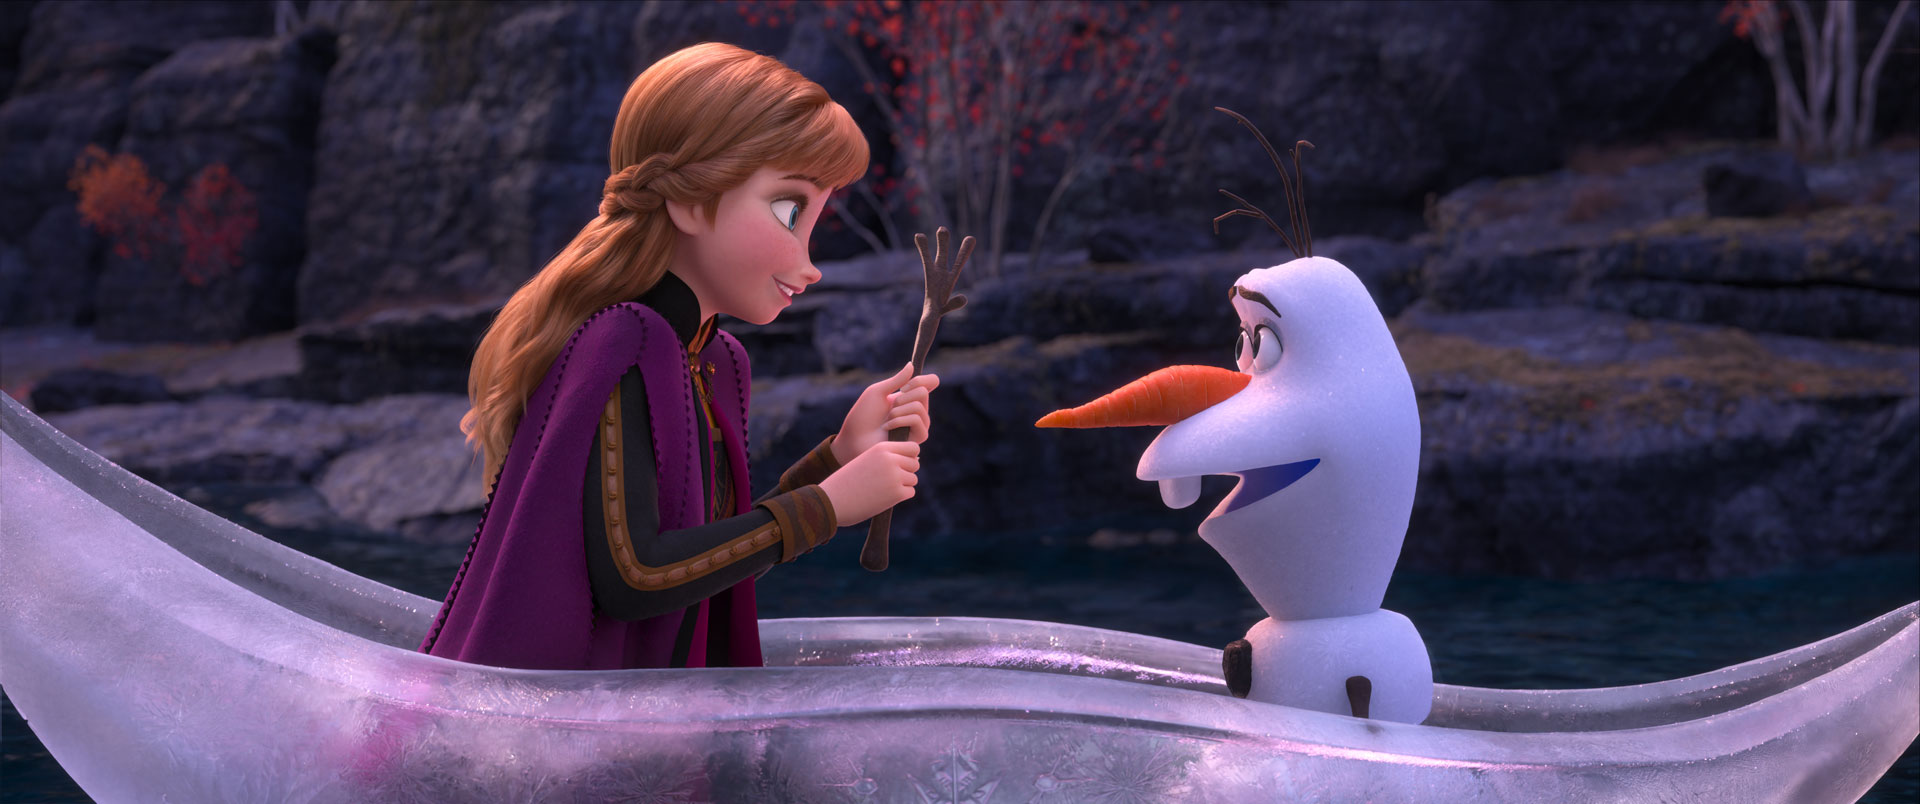 Art And Technology Together Drive Frozen 2 Filmmakers Incredible Leap Into The Unknown The Walt Disney Company